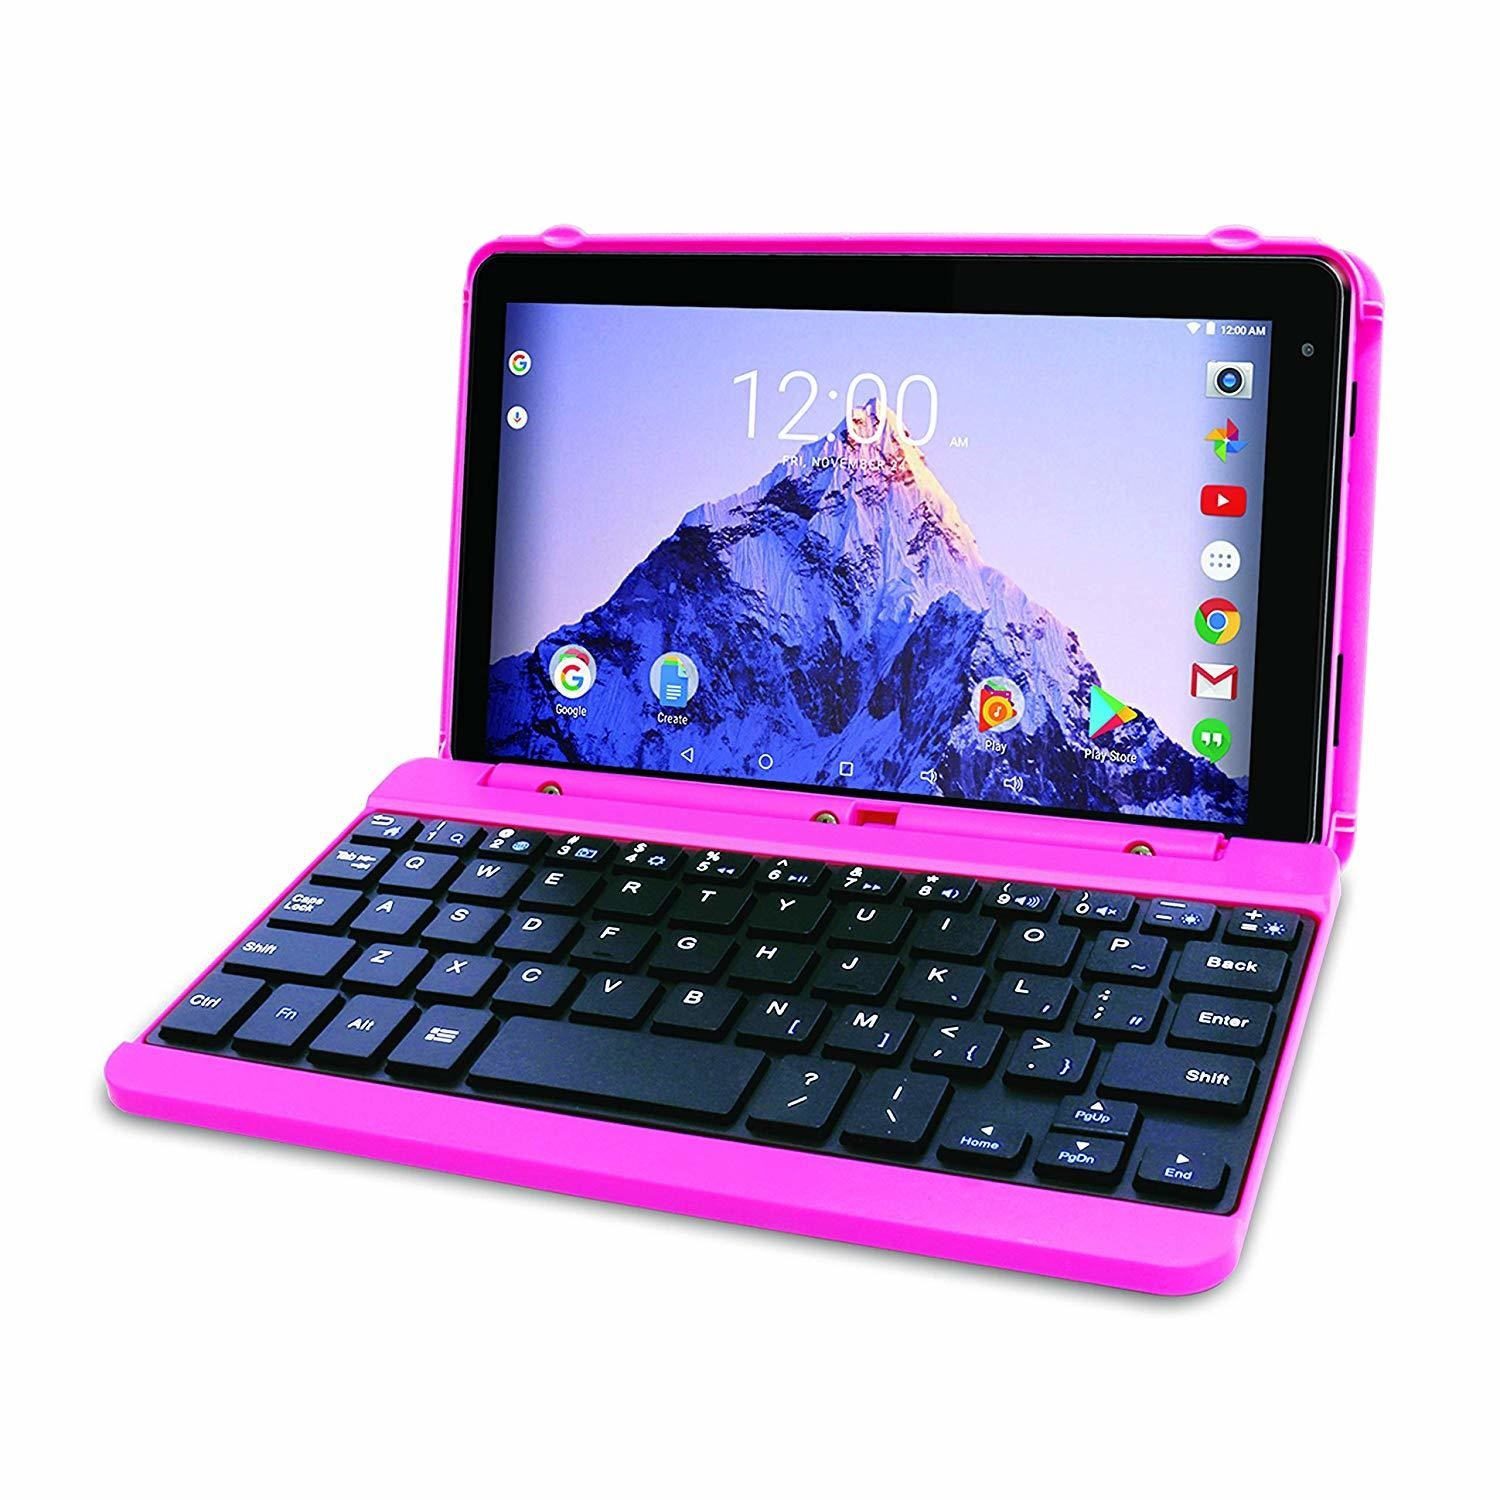 USAGE - LIKE NEW - RCA Voyager Pro 7 ECRAN DE 7 POUCES 16GB Tablet Avec Clavier Keyboard Case Android 6.0 (Marshmallow Rose)